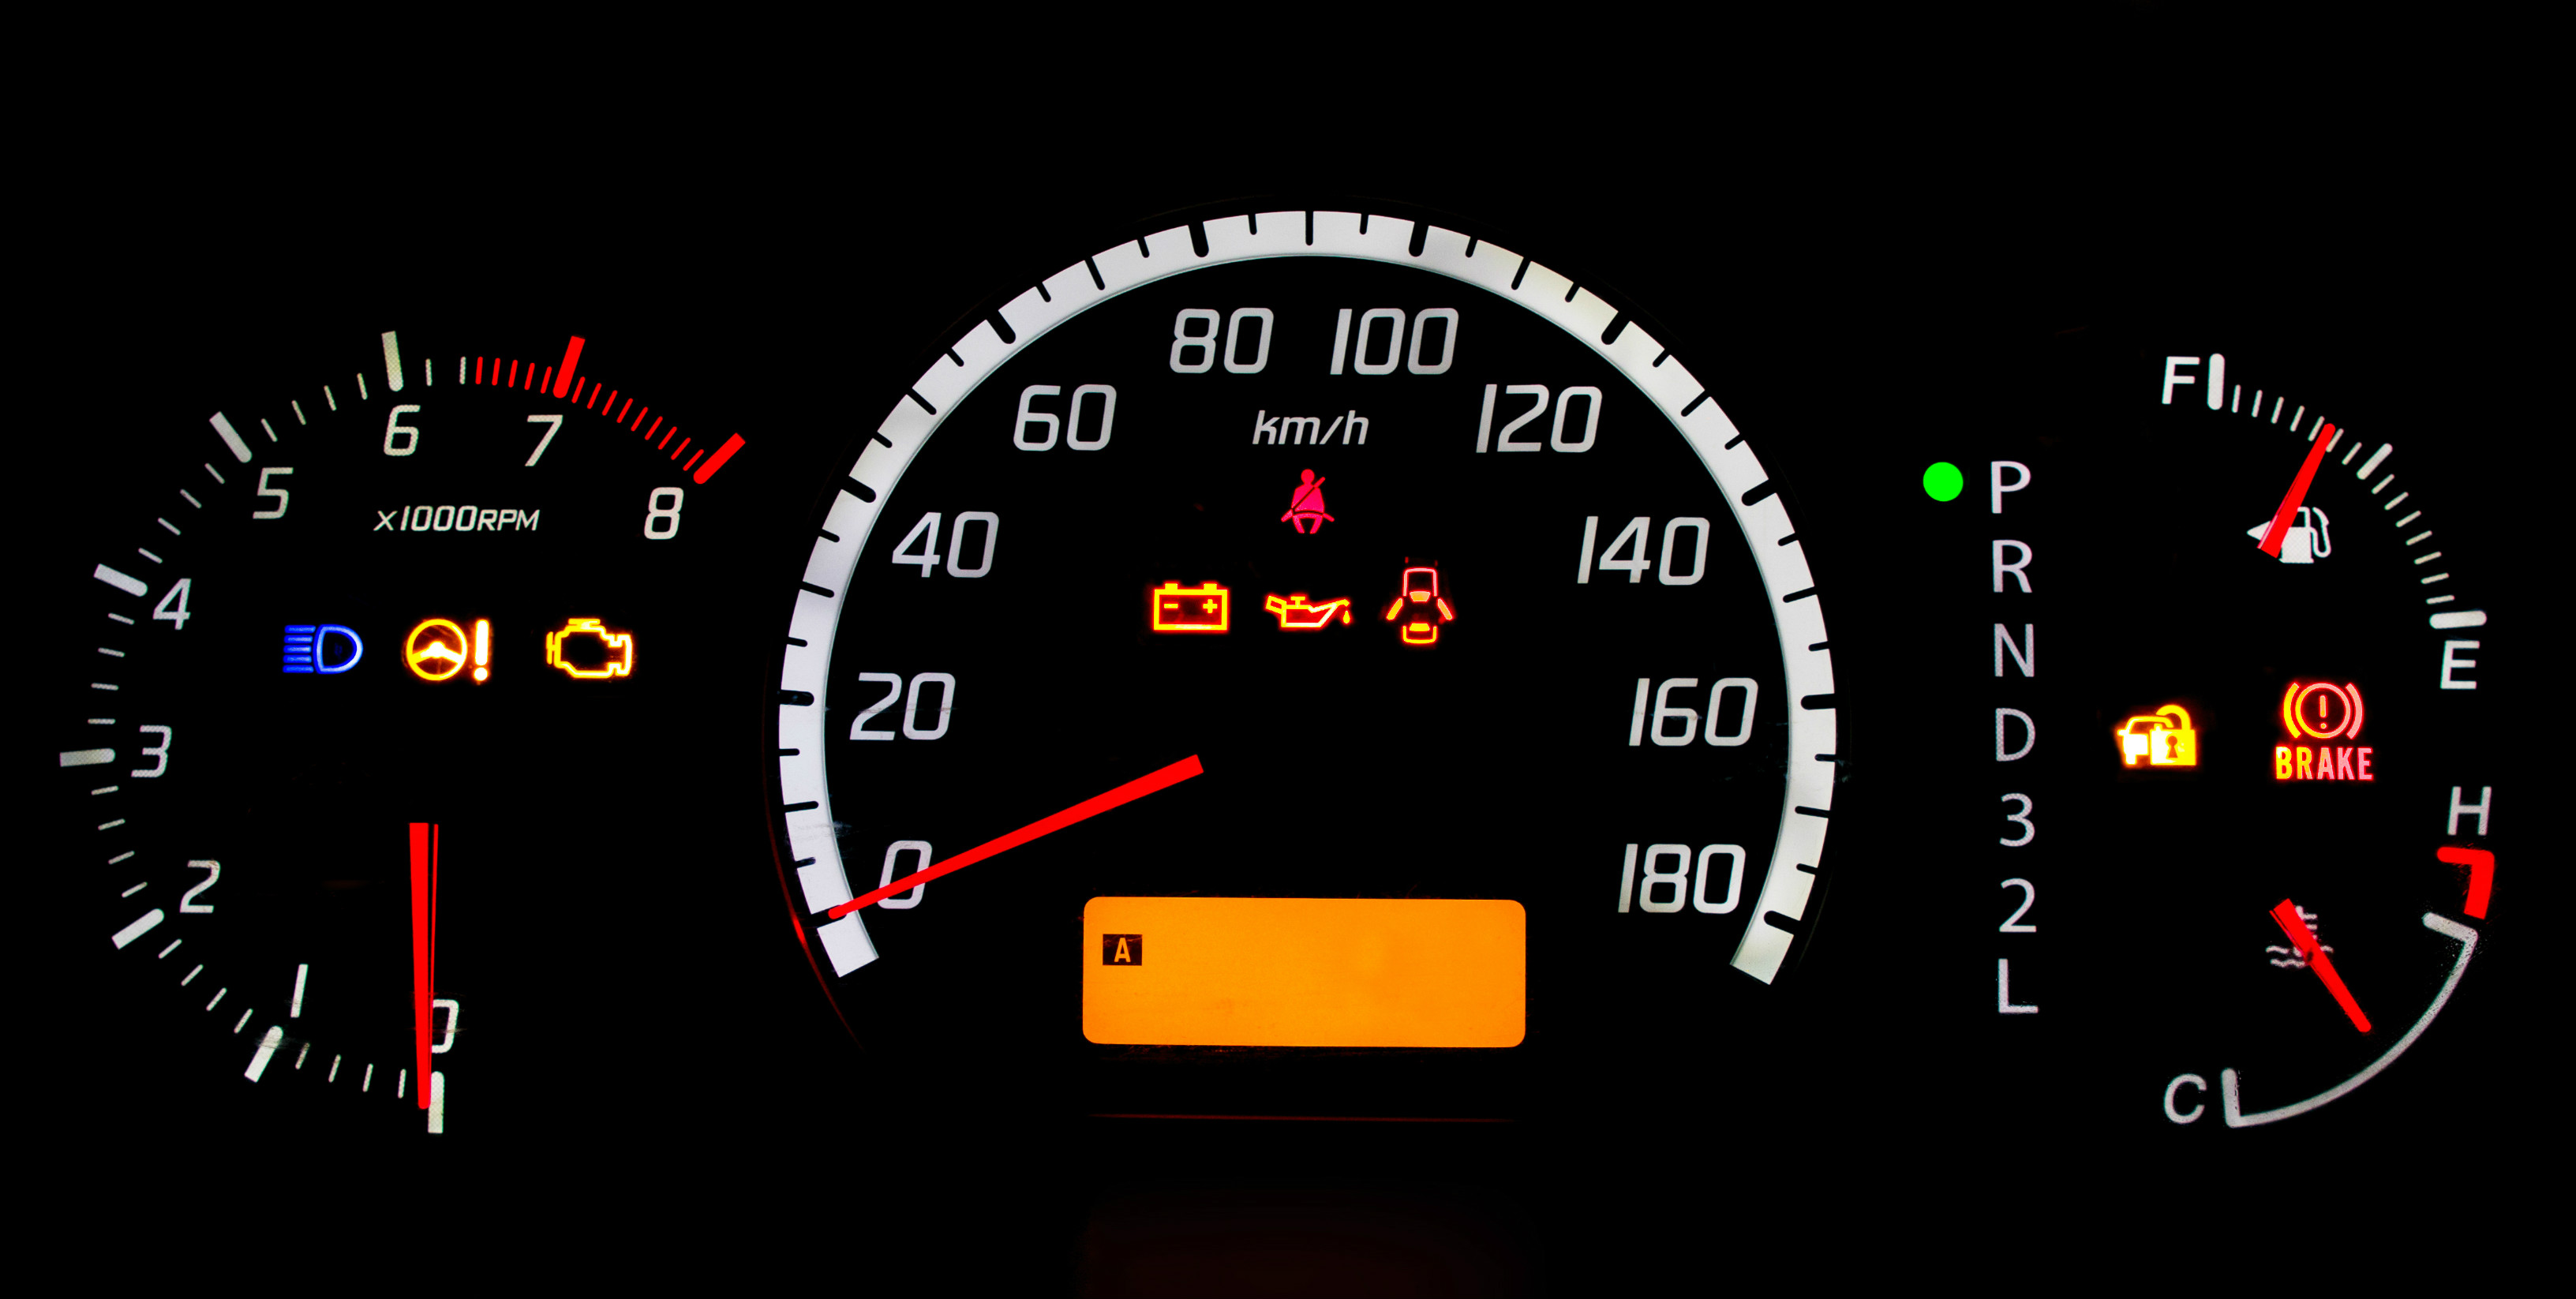 What Do All Those Lights Mean on My Dashboard? - Willard's